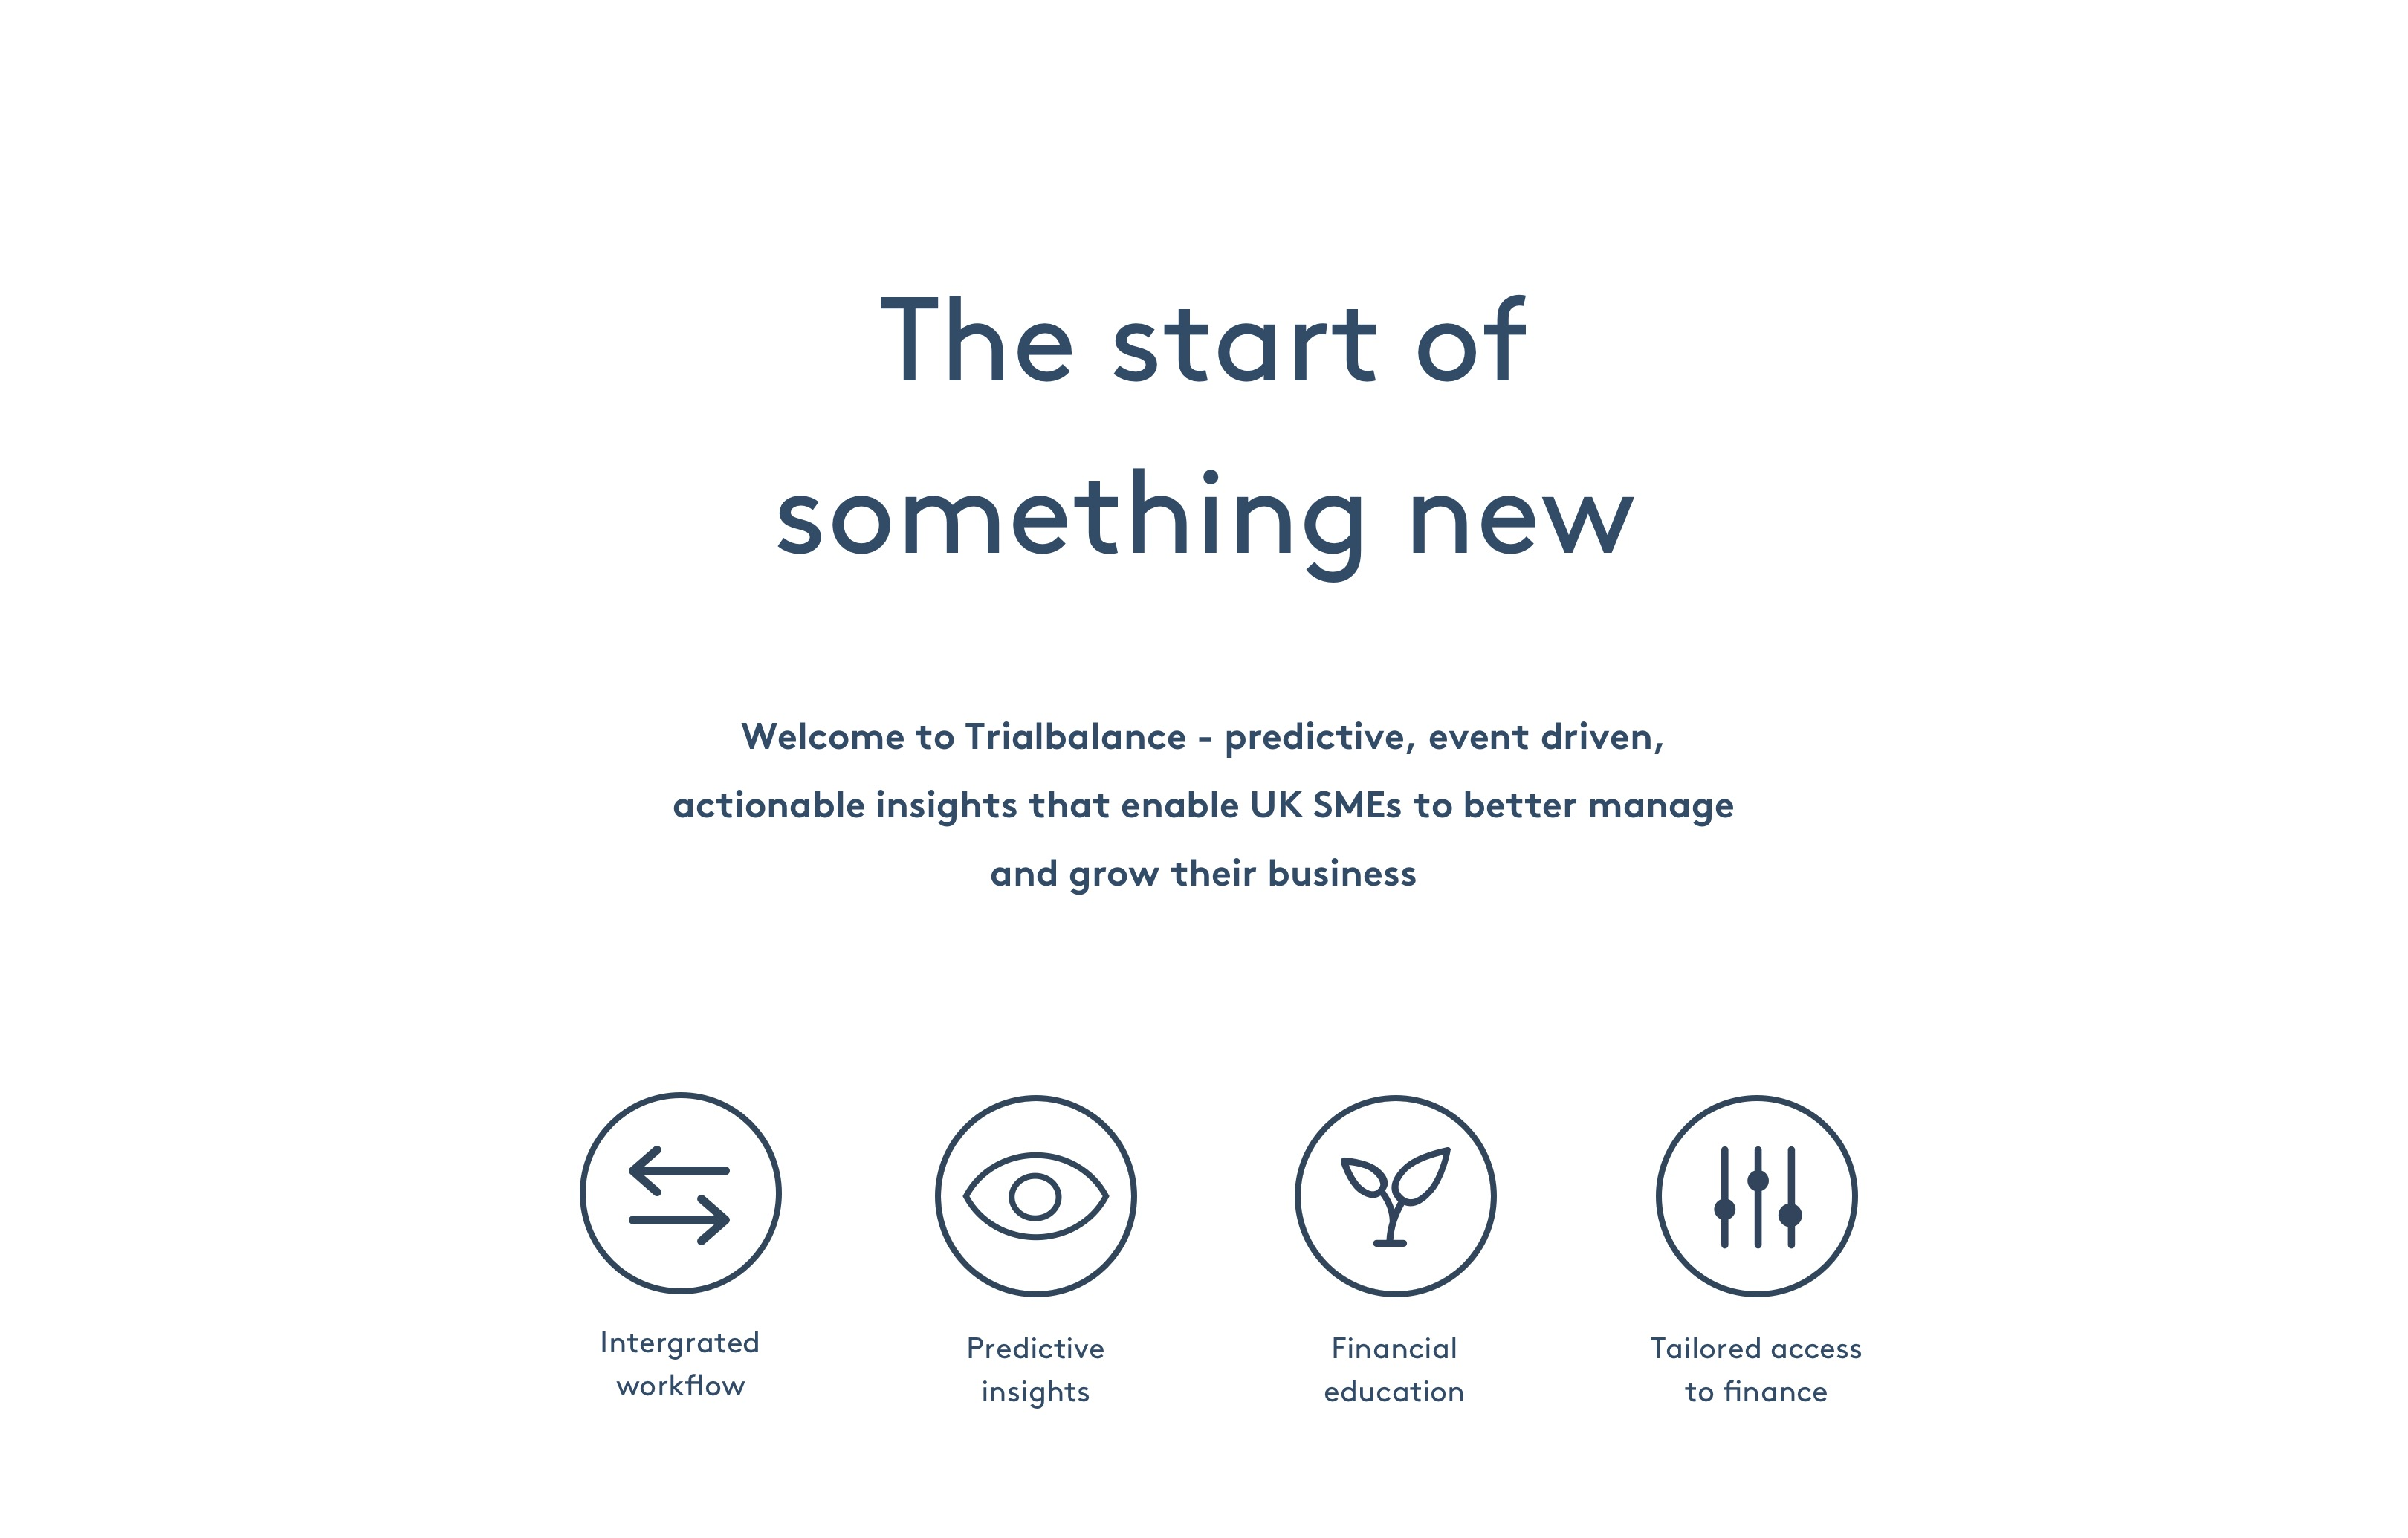 trialbalance - for small businesses